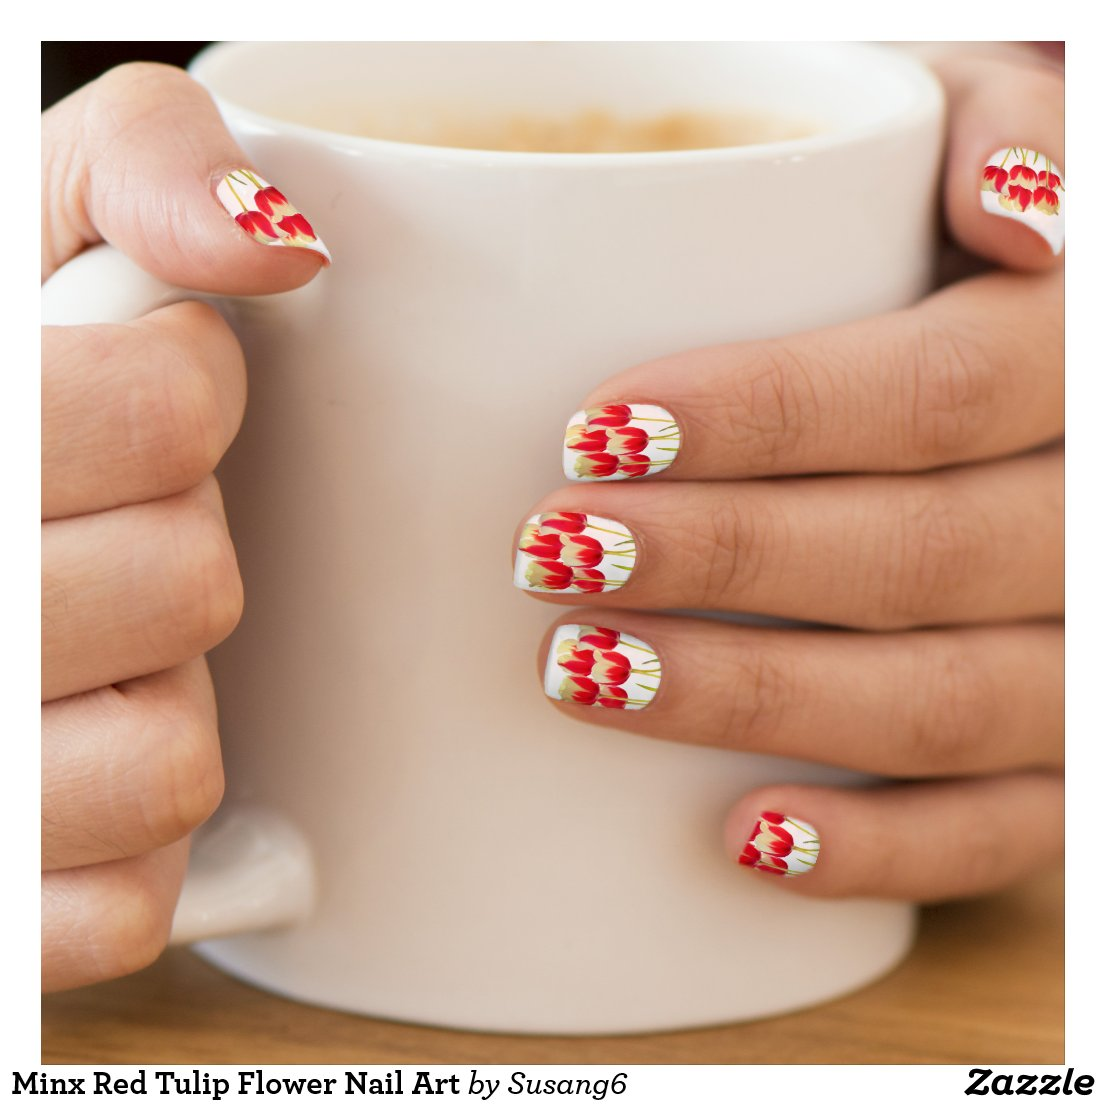 Minx Red Tulip Flower Nail Art